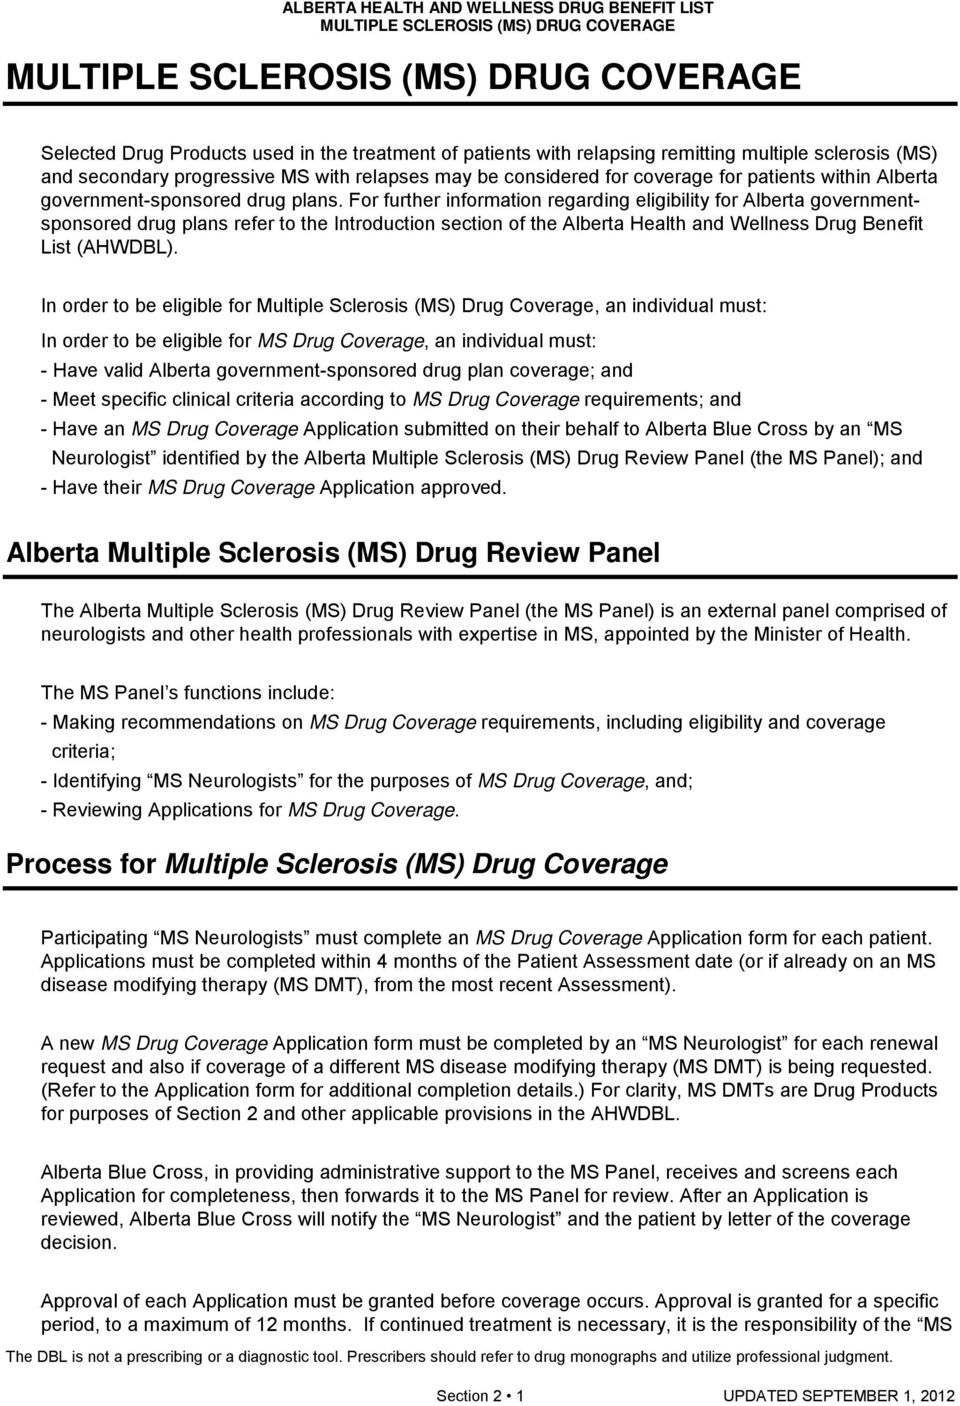 For further information regarding eligibility for Alberta governmentsponsored drug plans refer to the Introduction section of the Alberta Health and Wellness Drug Benefit List (AHWDBL).